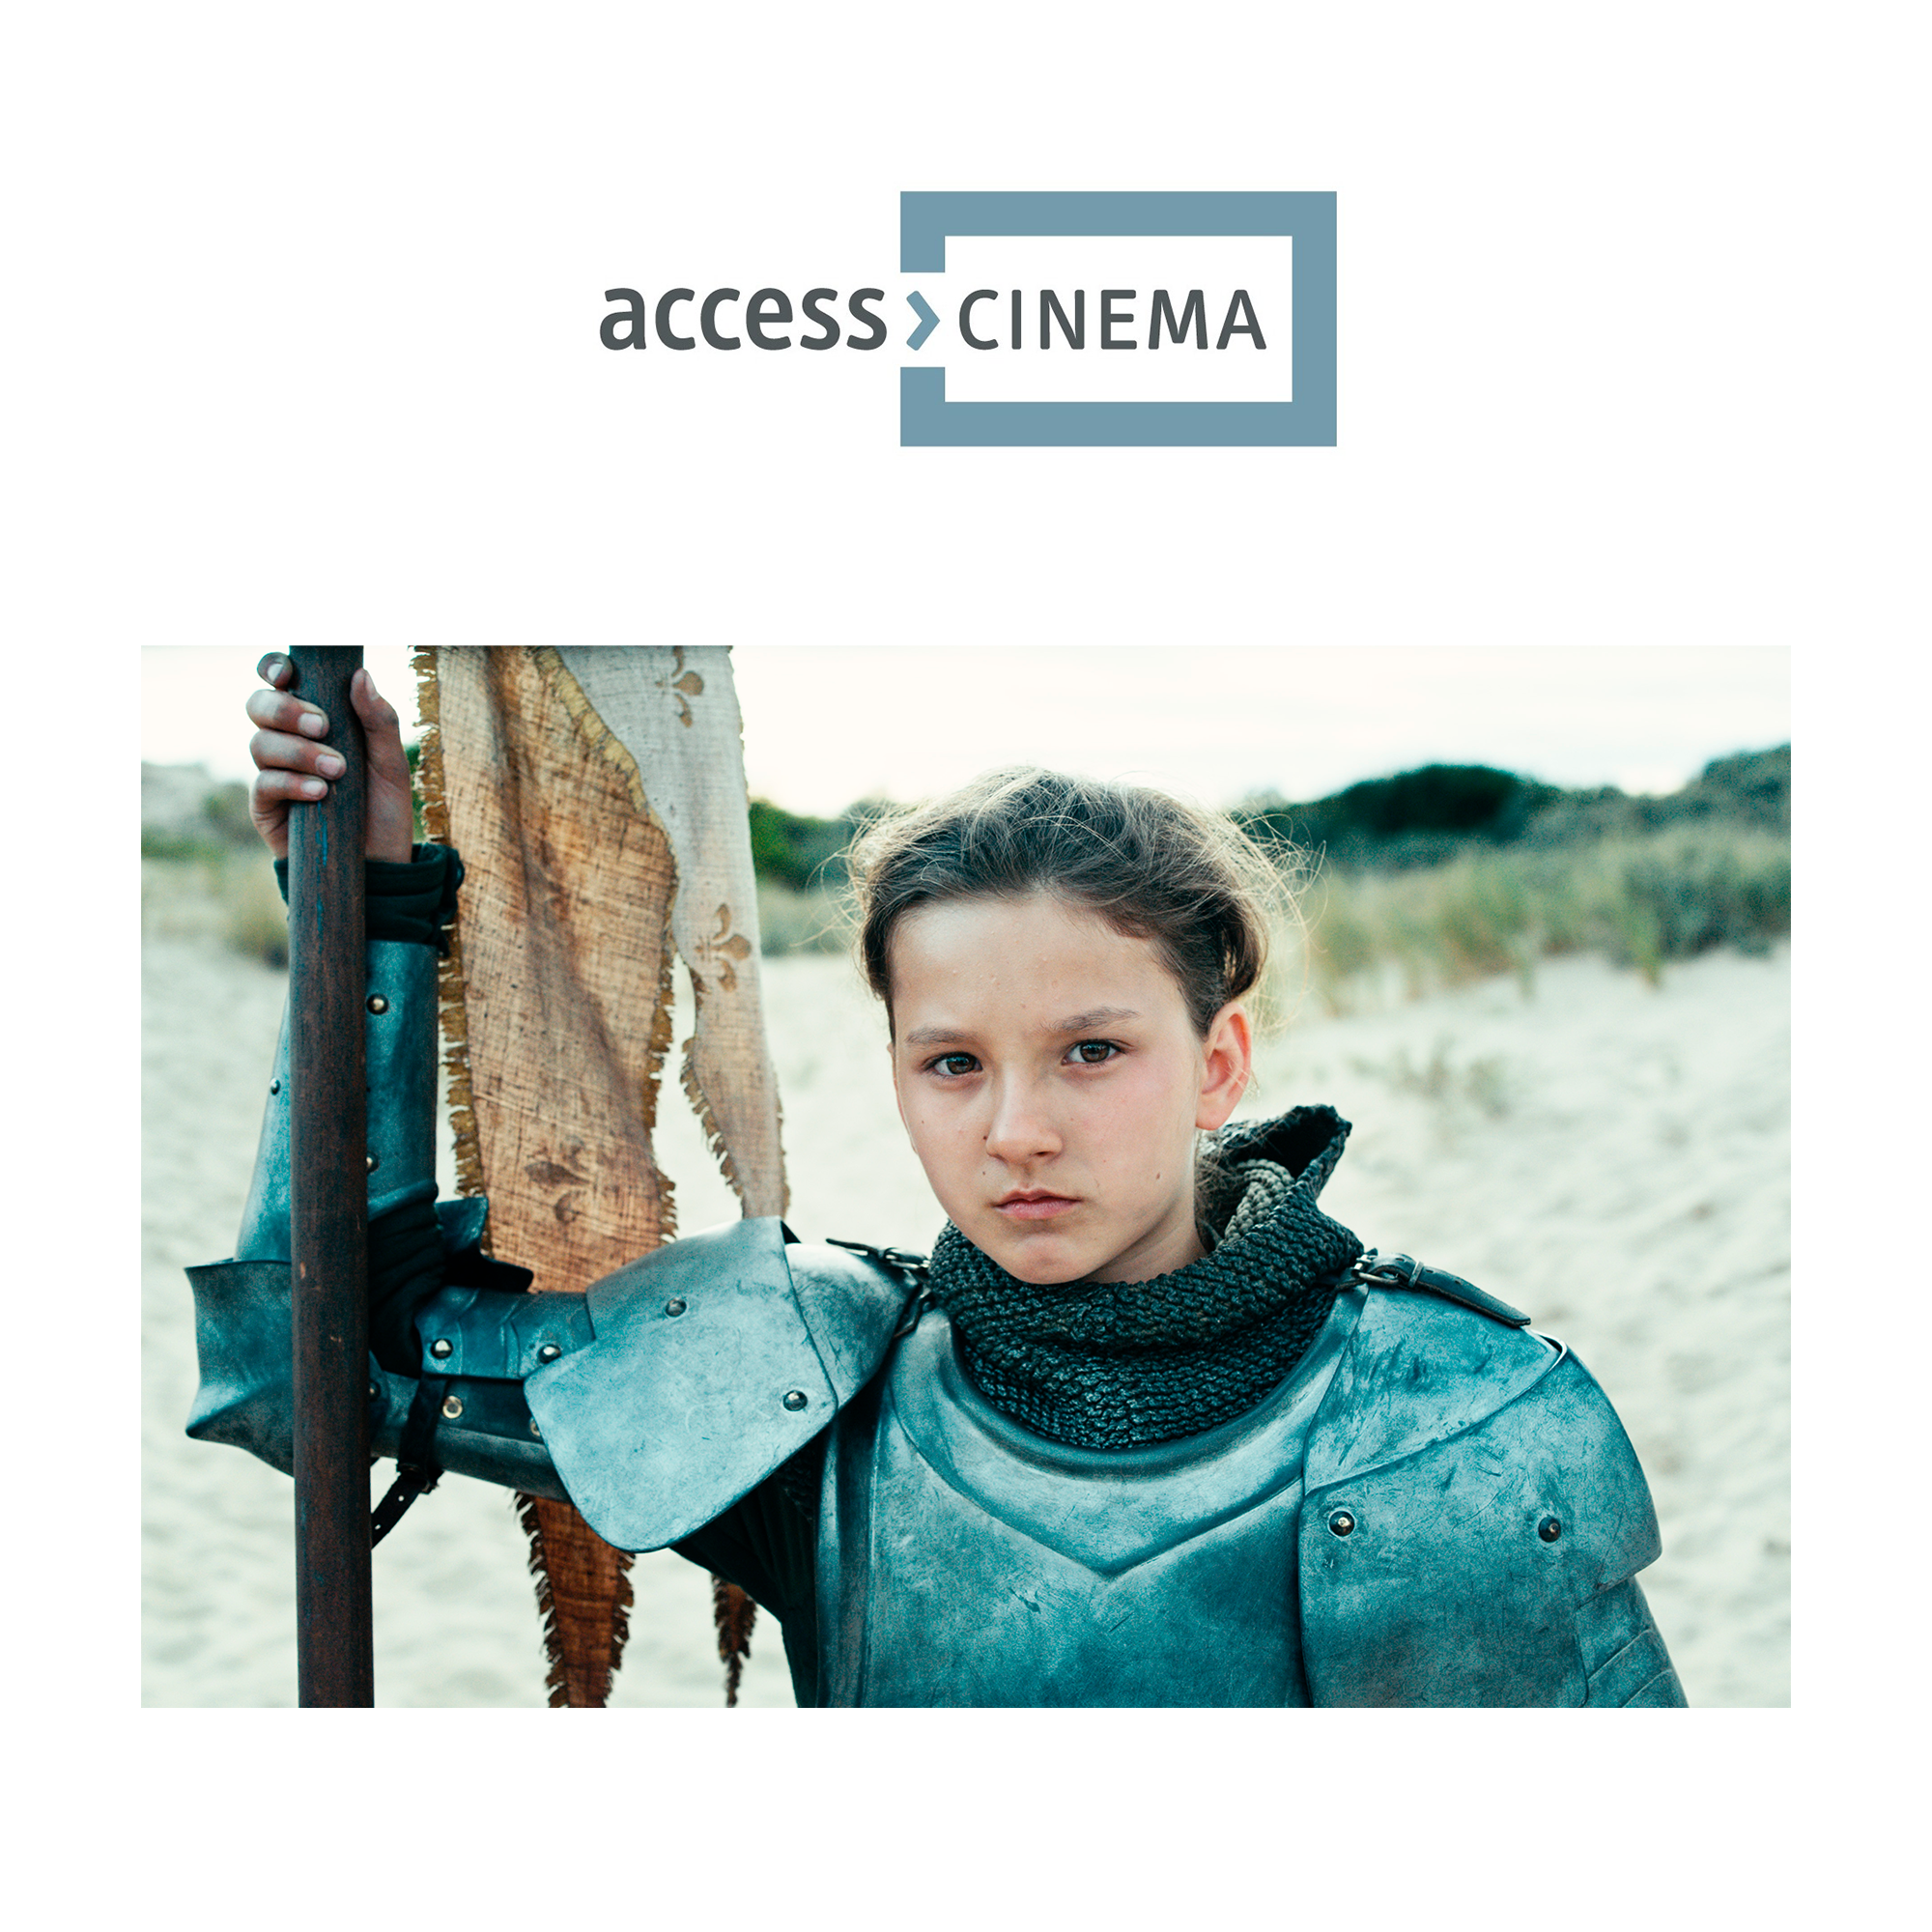 Joan of Arc at access>CINEMA